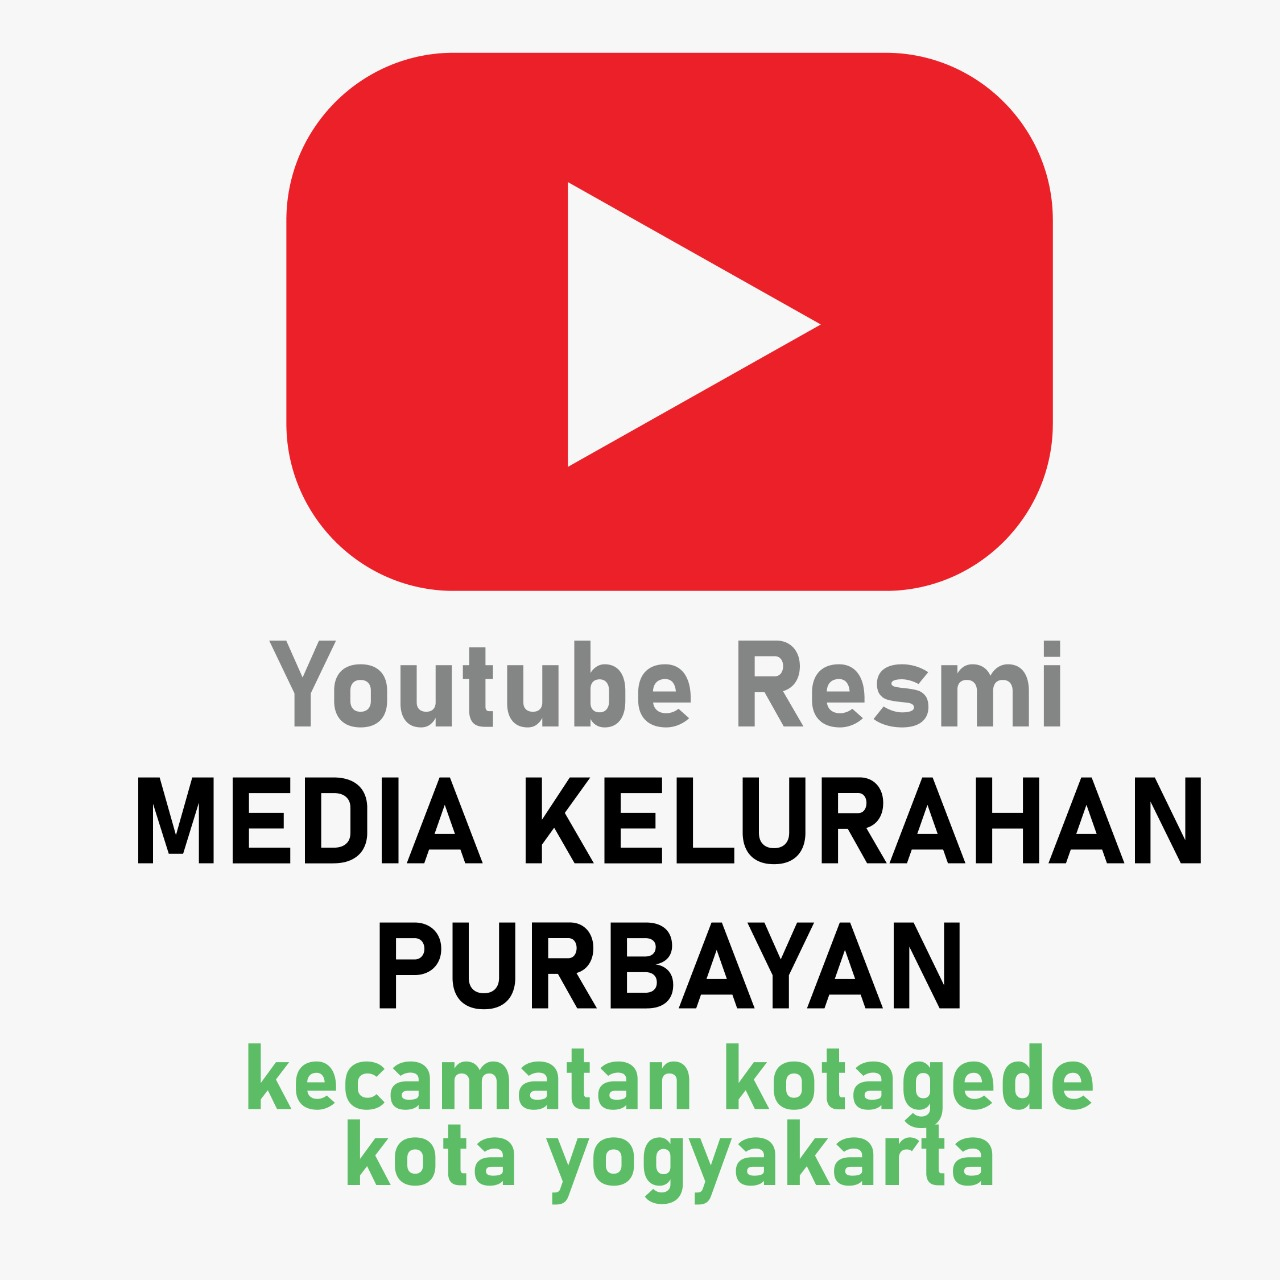 Youtube Media Kelurahan Purbayan